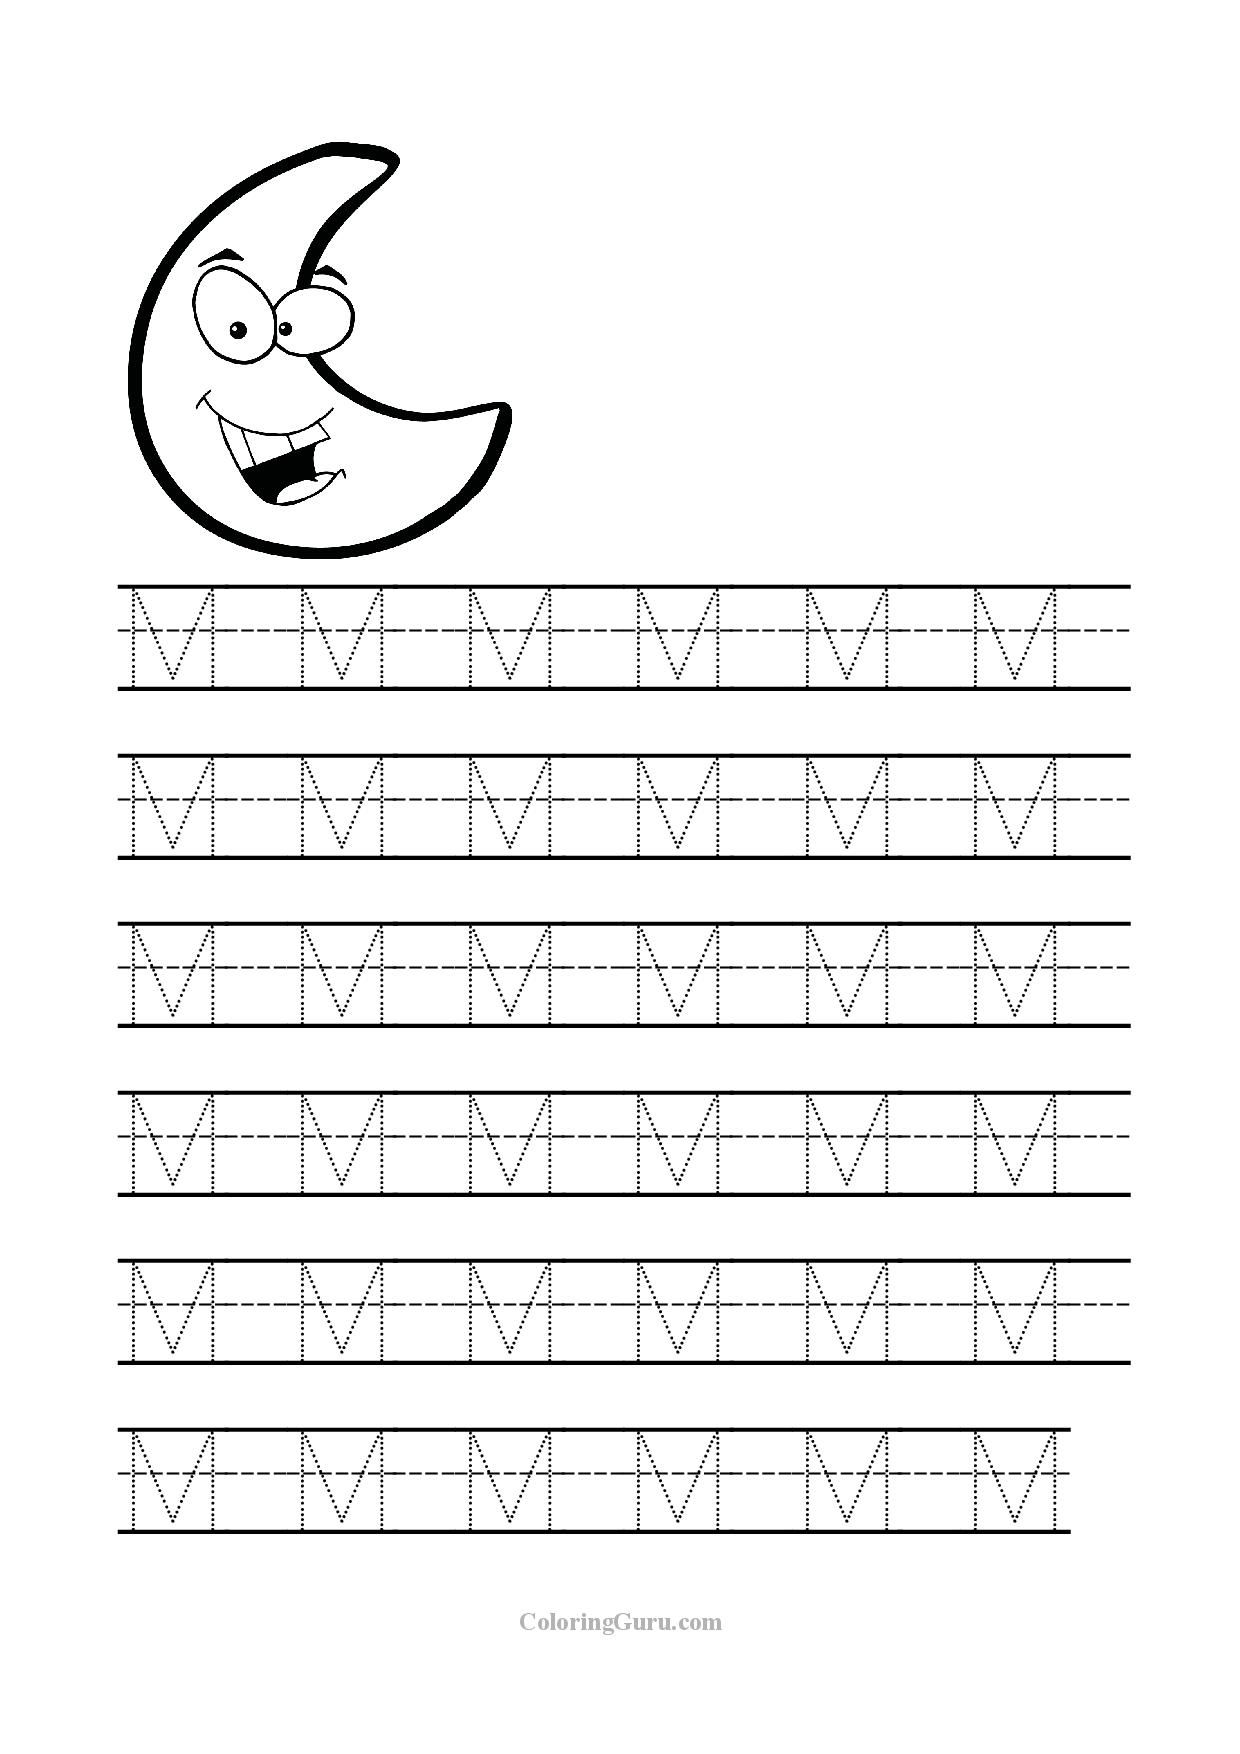 Worksheets Letter M Worksheets For Kindergarten free printable tracing letter m worksheets for preschool sometimes preschool